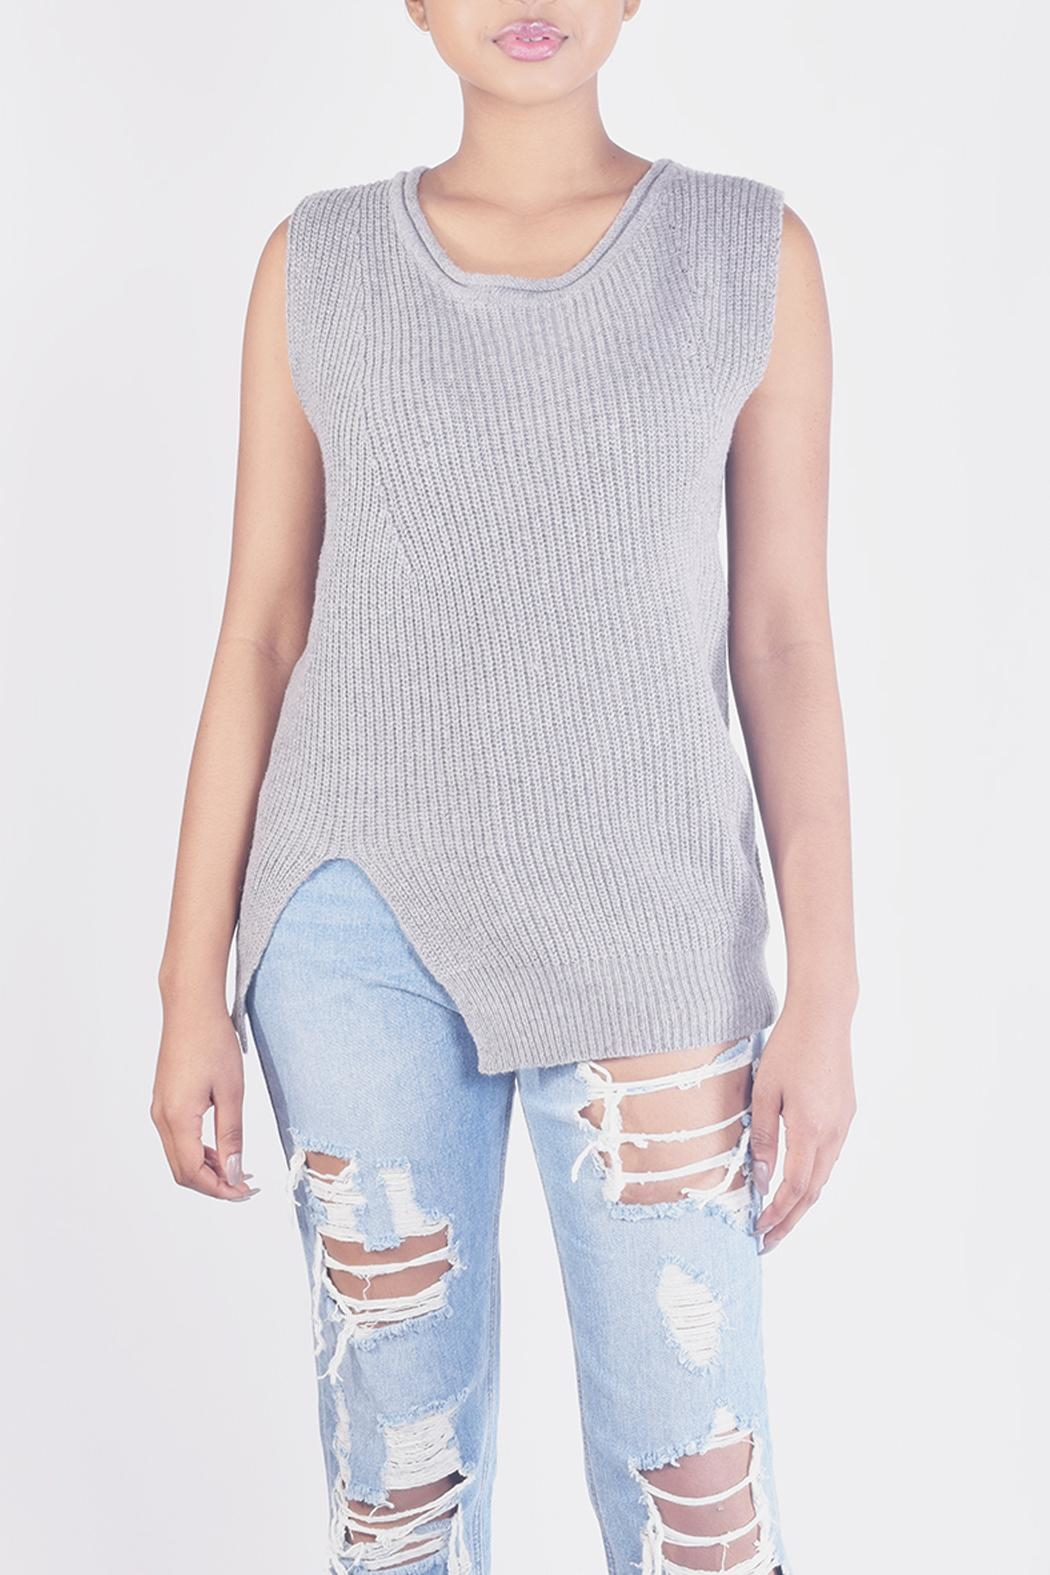 Ellison Chic Sleevless Knit-Top - Side Cropped Image